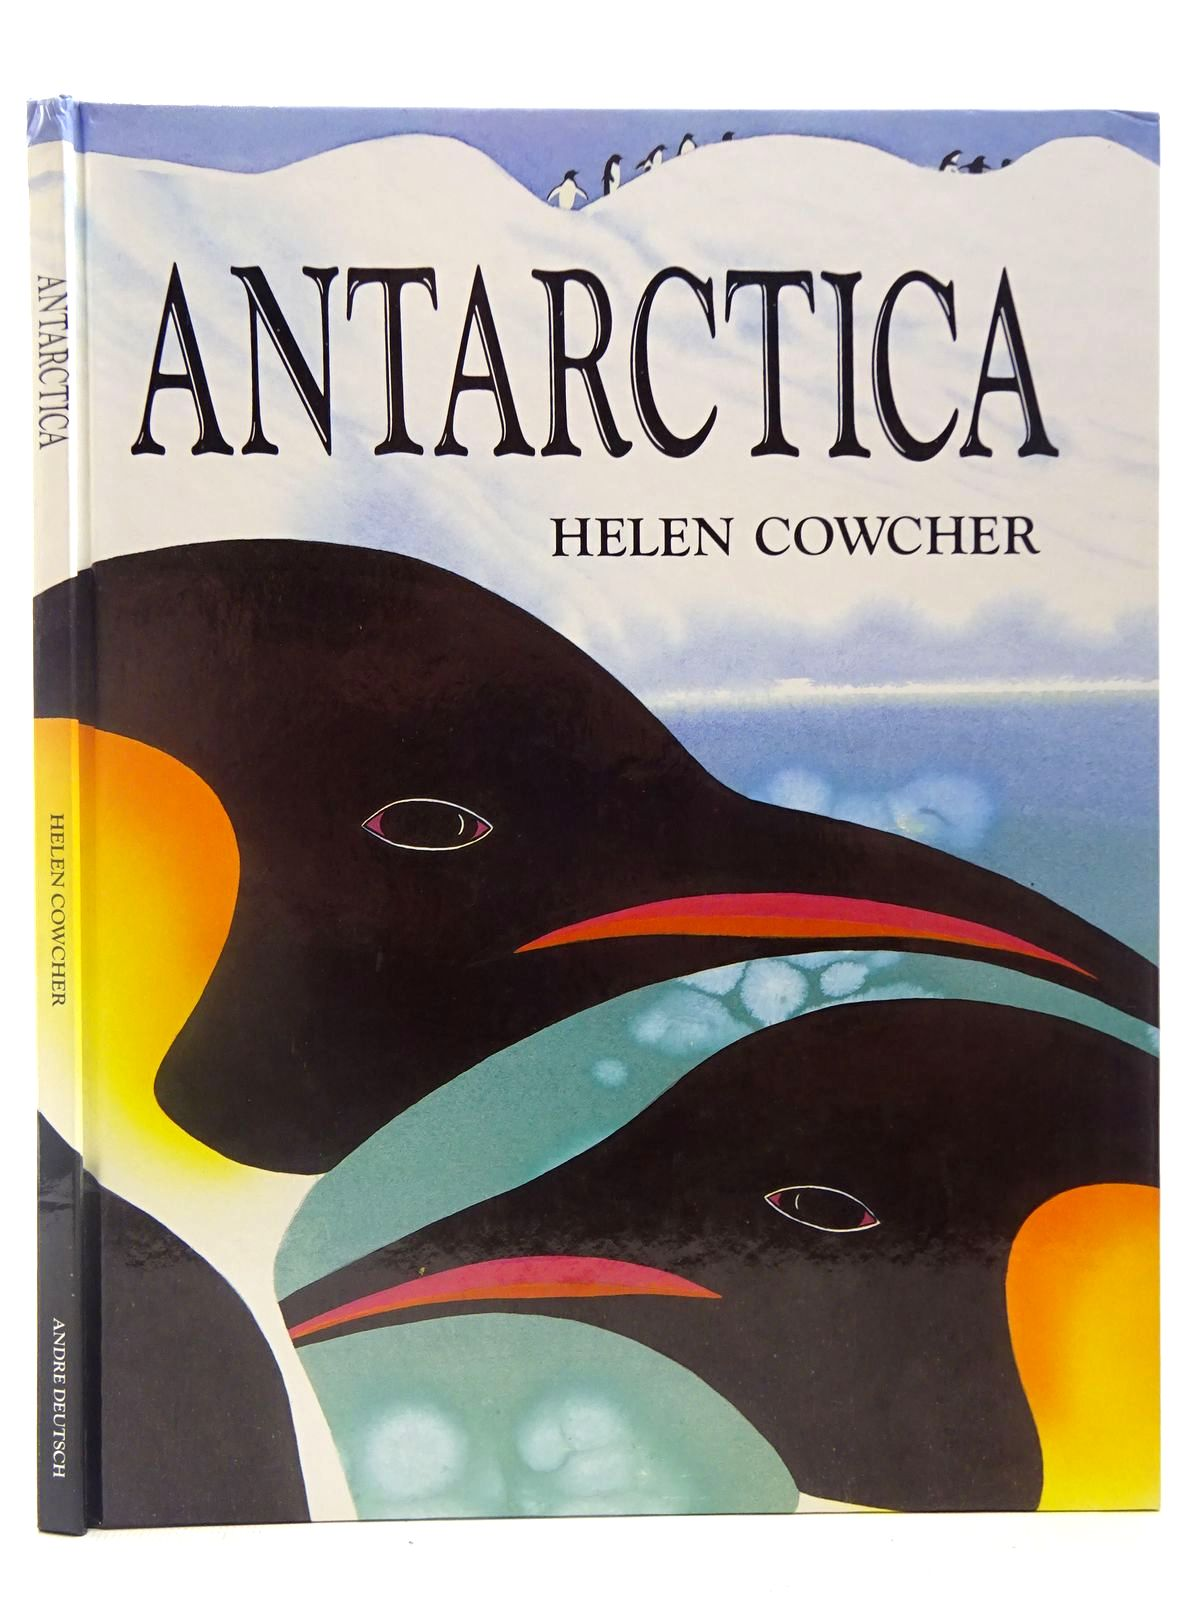 Photo of ANTARCTICA written by Cowcher, Helen illustrated by Cowcher, Helen published by Andre Deutsch (STOCK CODE: 2127212)  for sale by Stella & Rose's Books